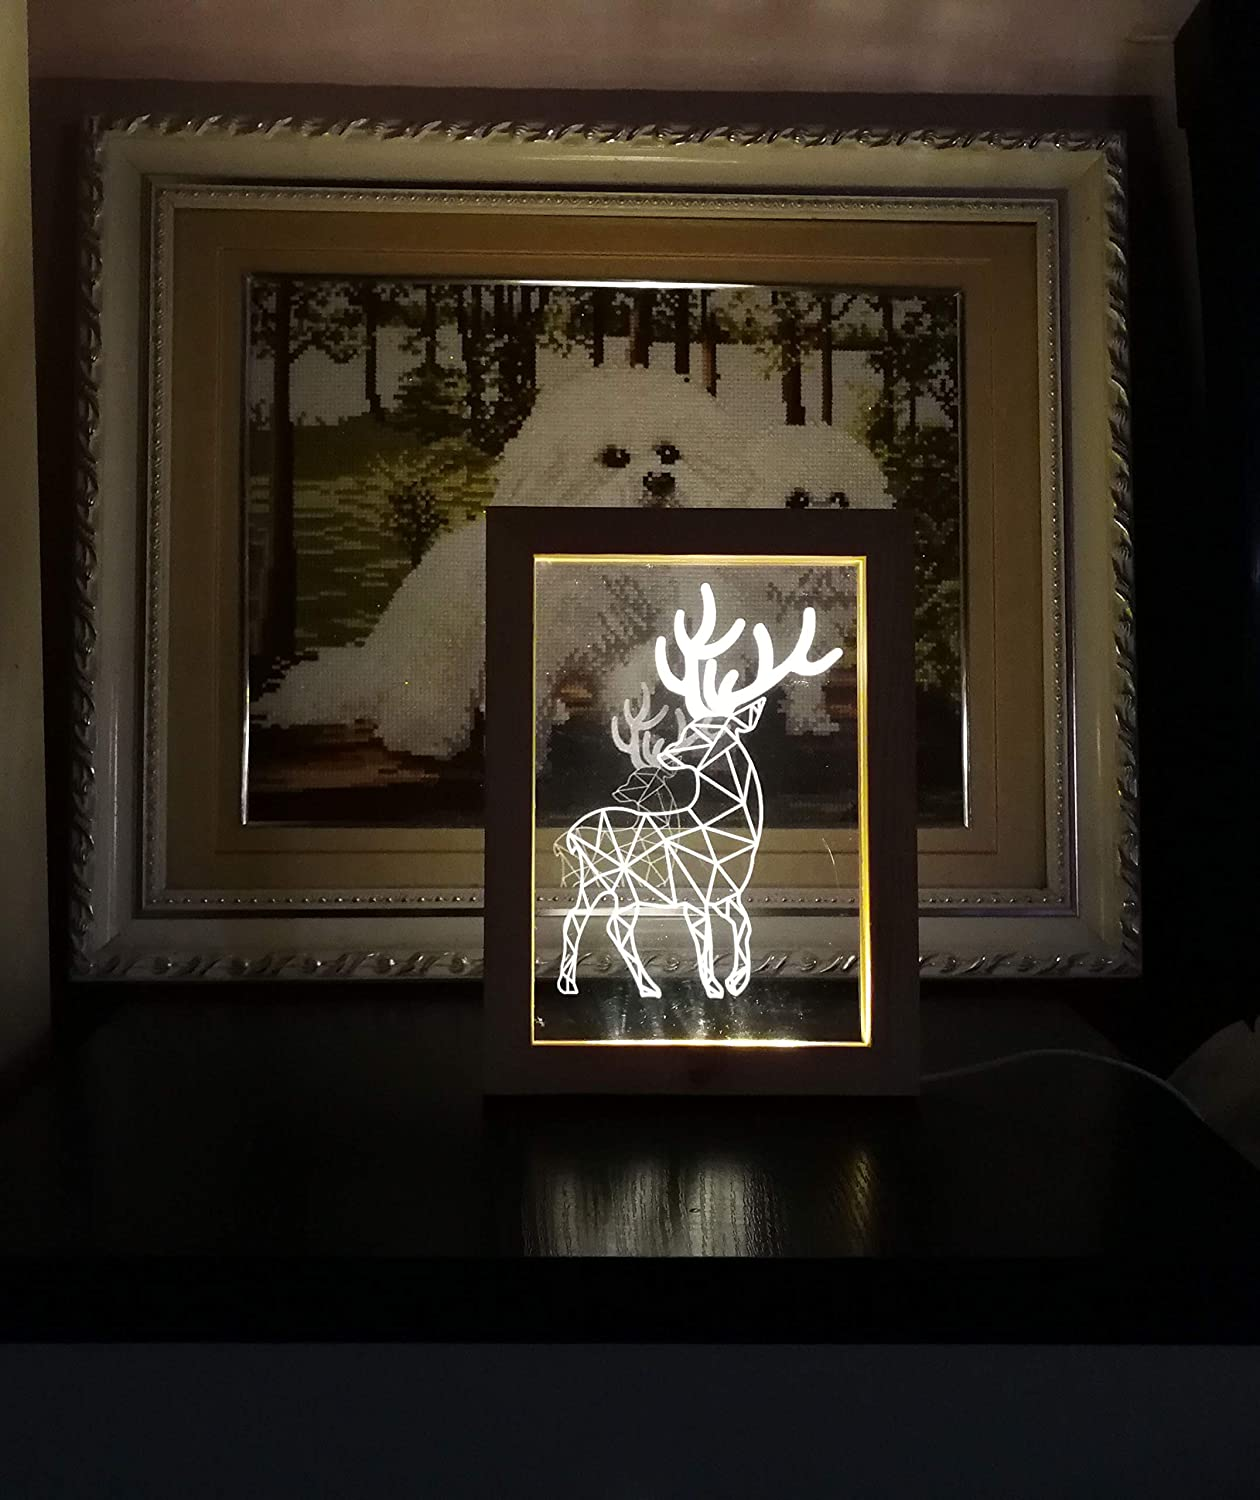 Decor Lighting of Hall Hotel Lobby Bedroom Exhibition Halls Bathroom 9X6.7X0.8in Cool Picture Night Light and Cute Sleeping Lamp for Kids Eiffel Tower Living Room Kevmiya LED Picture Frame